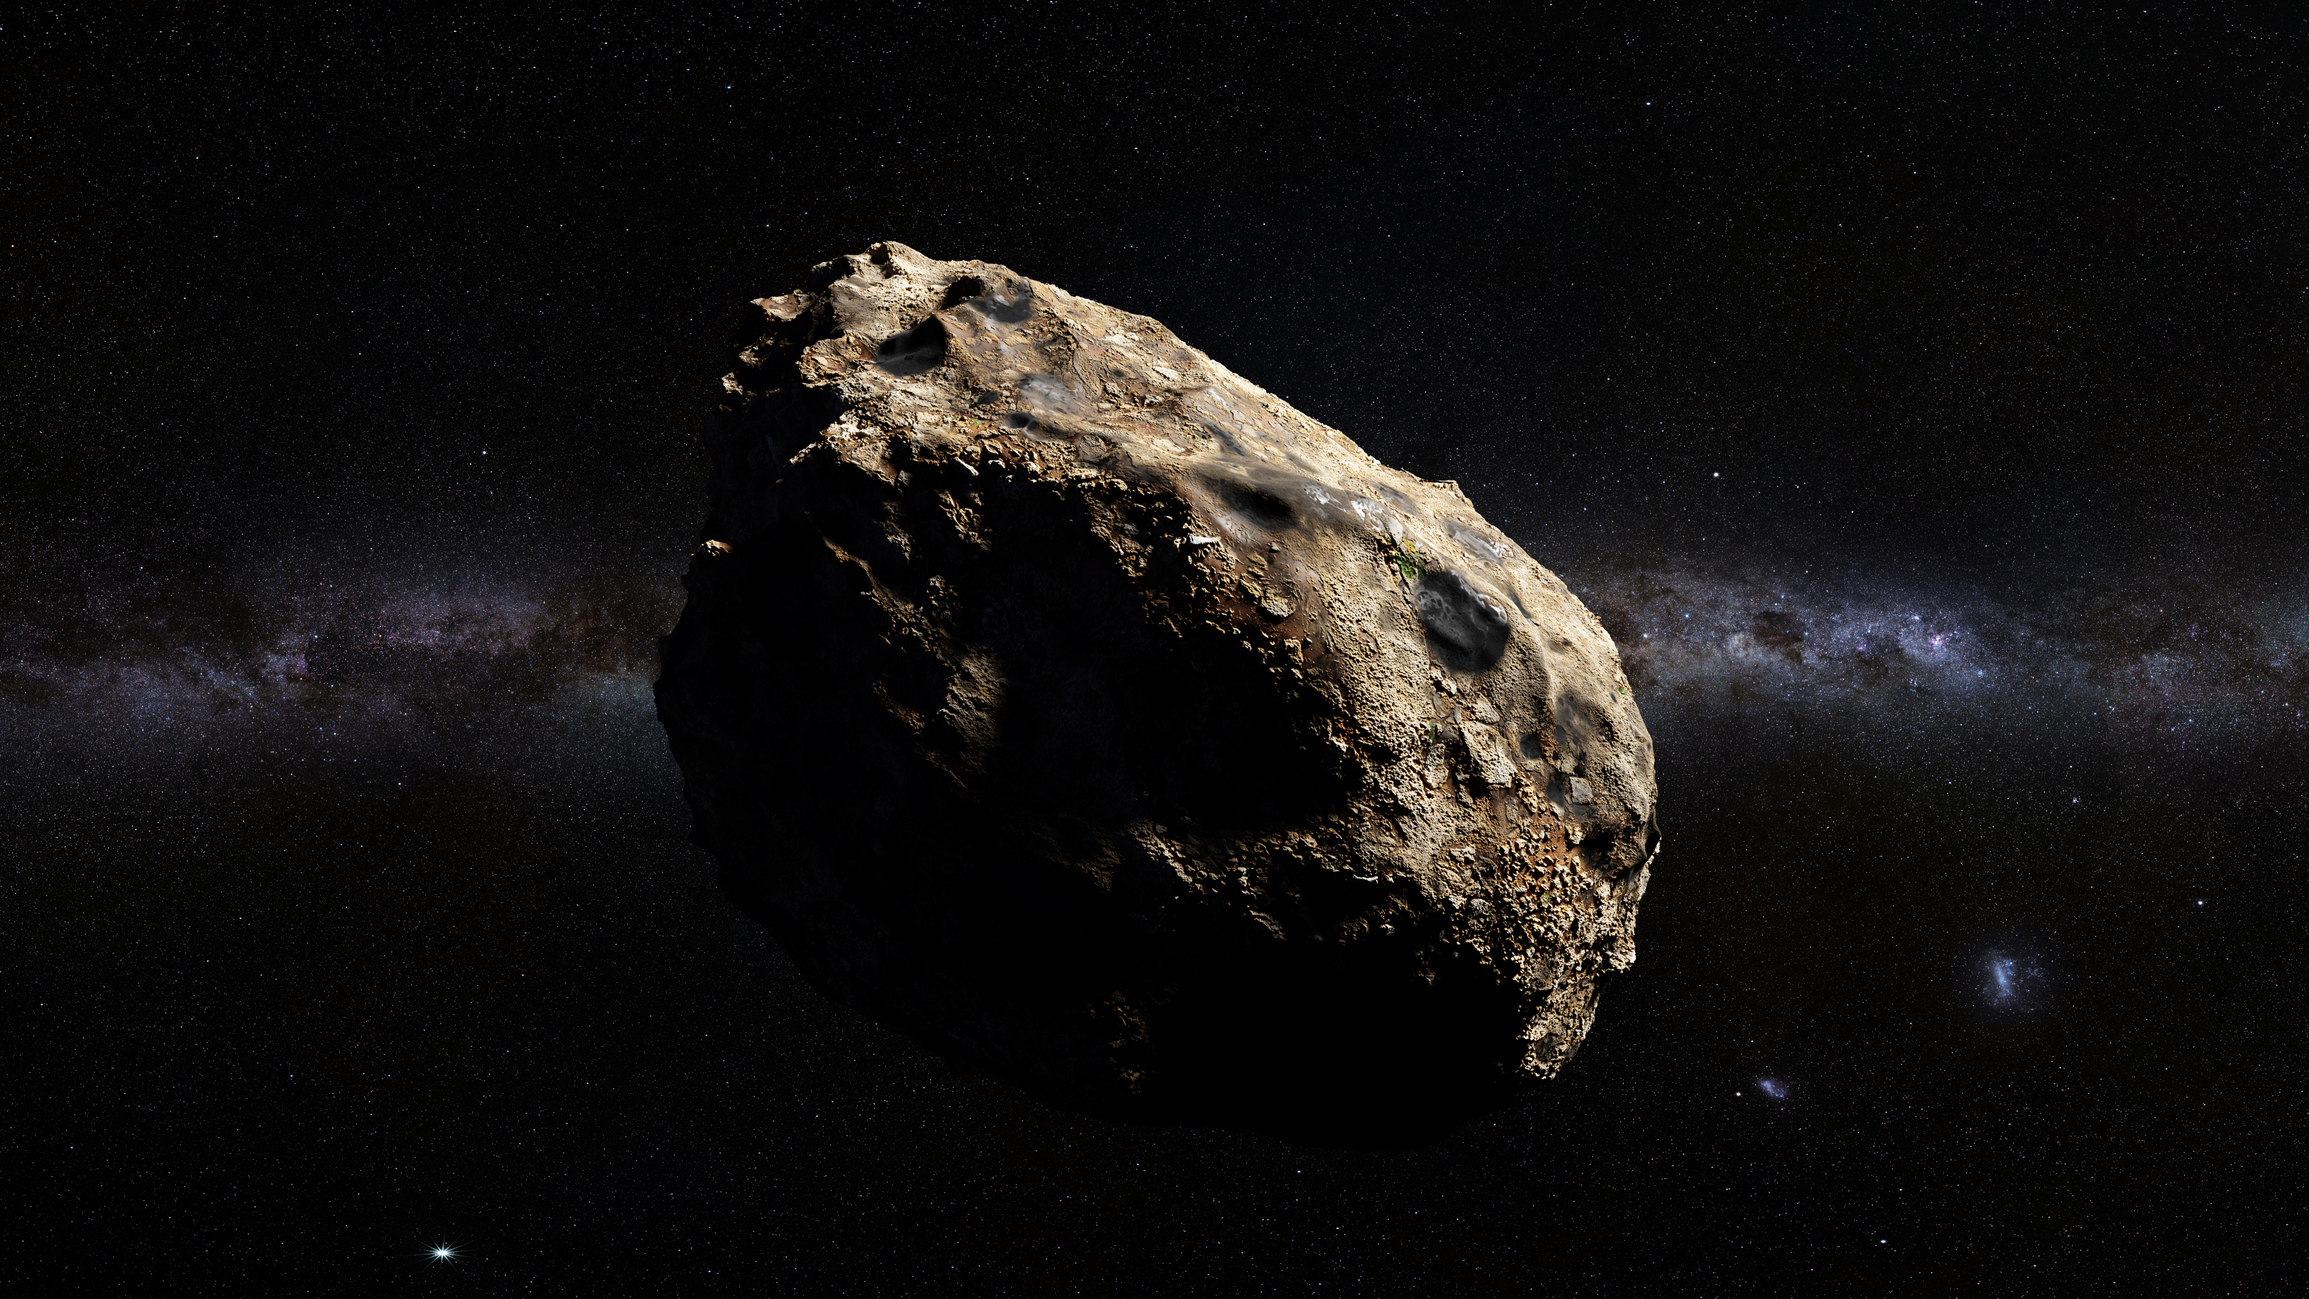 """Asteroid over 1,000 feet wide dubbed the """"god of chaos"""" could strike earth in 2068, scientists warn"""